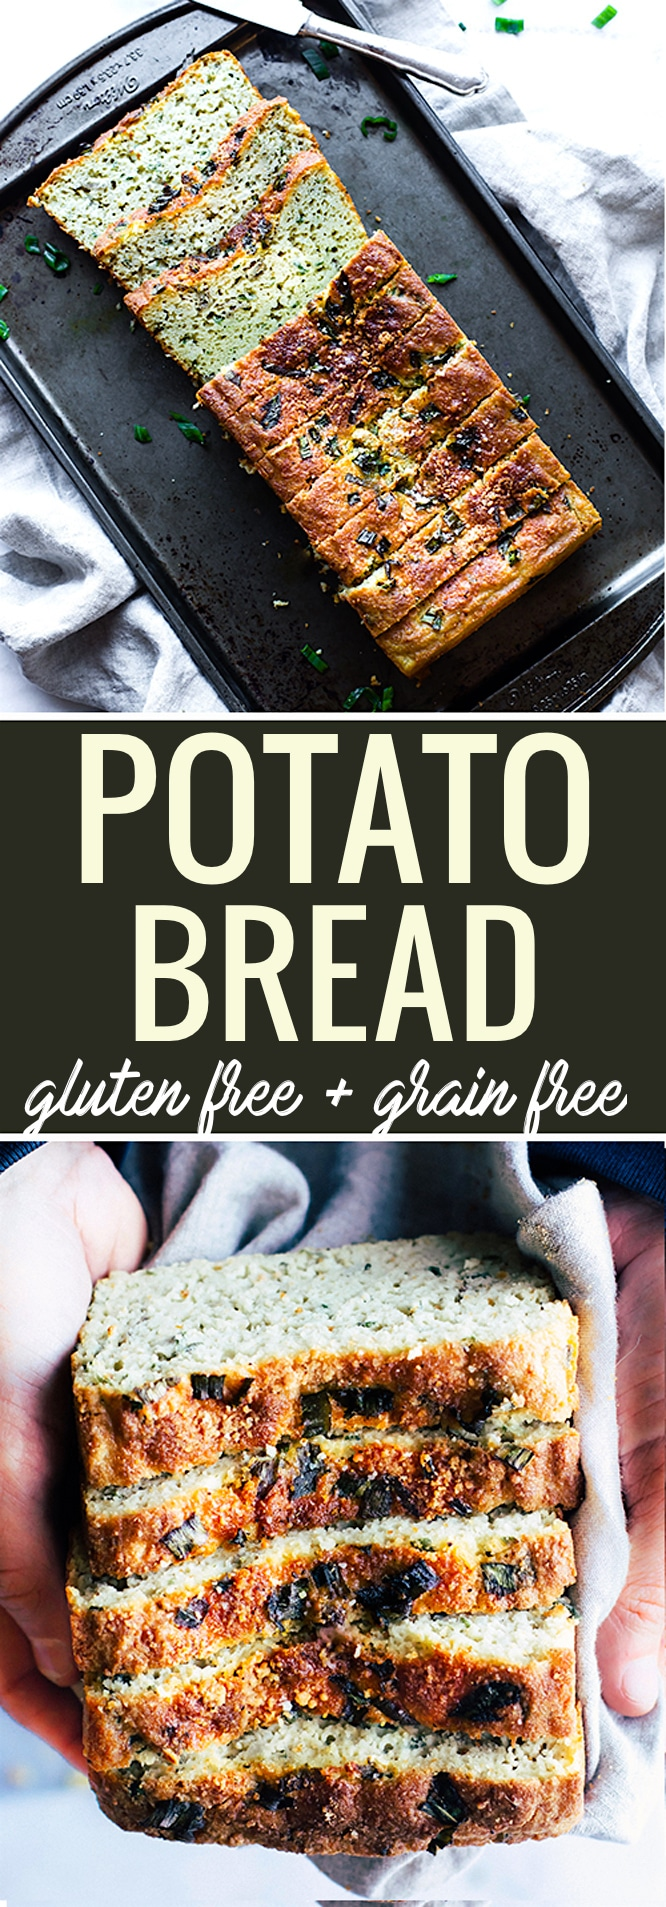 Easy Homemade Gluten Free Potato Bread with onion and herbs! This grain free and gluten free potato bread is simple to make, healthy, and delicious! A great way to use up any lefotver baked or mashed potatoes too. A homemade potato bread that hearty and flavorful! www.cottercrunch.com @cottercrunch